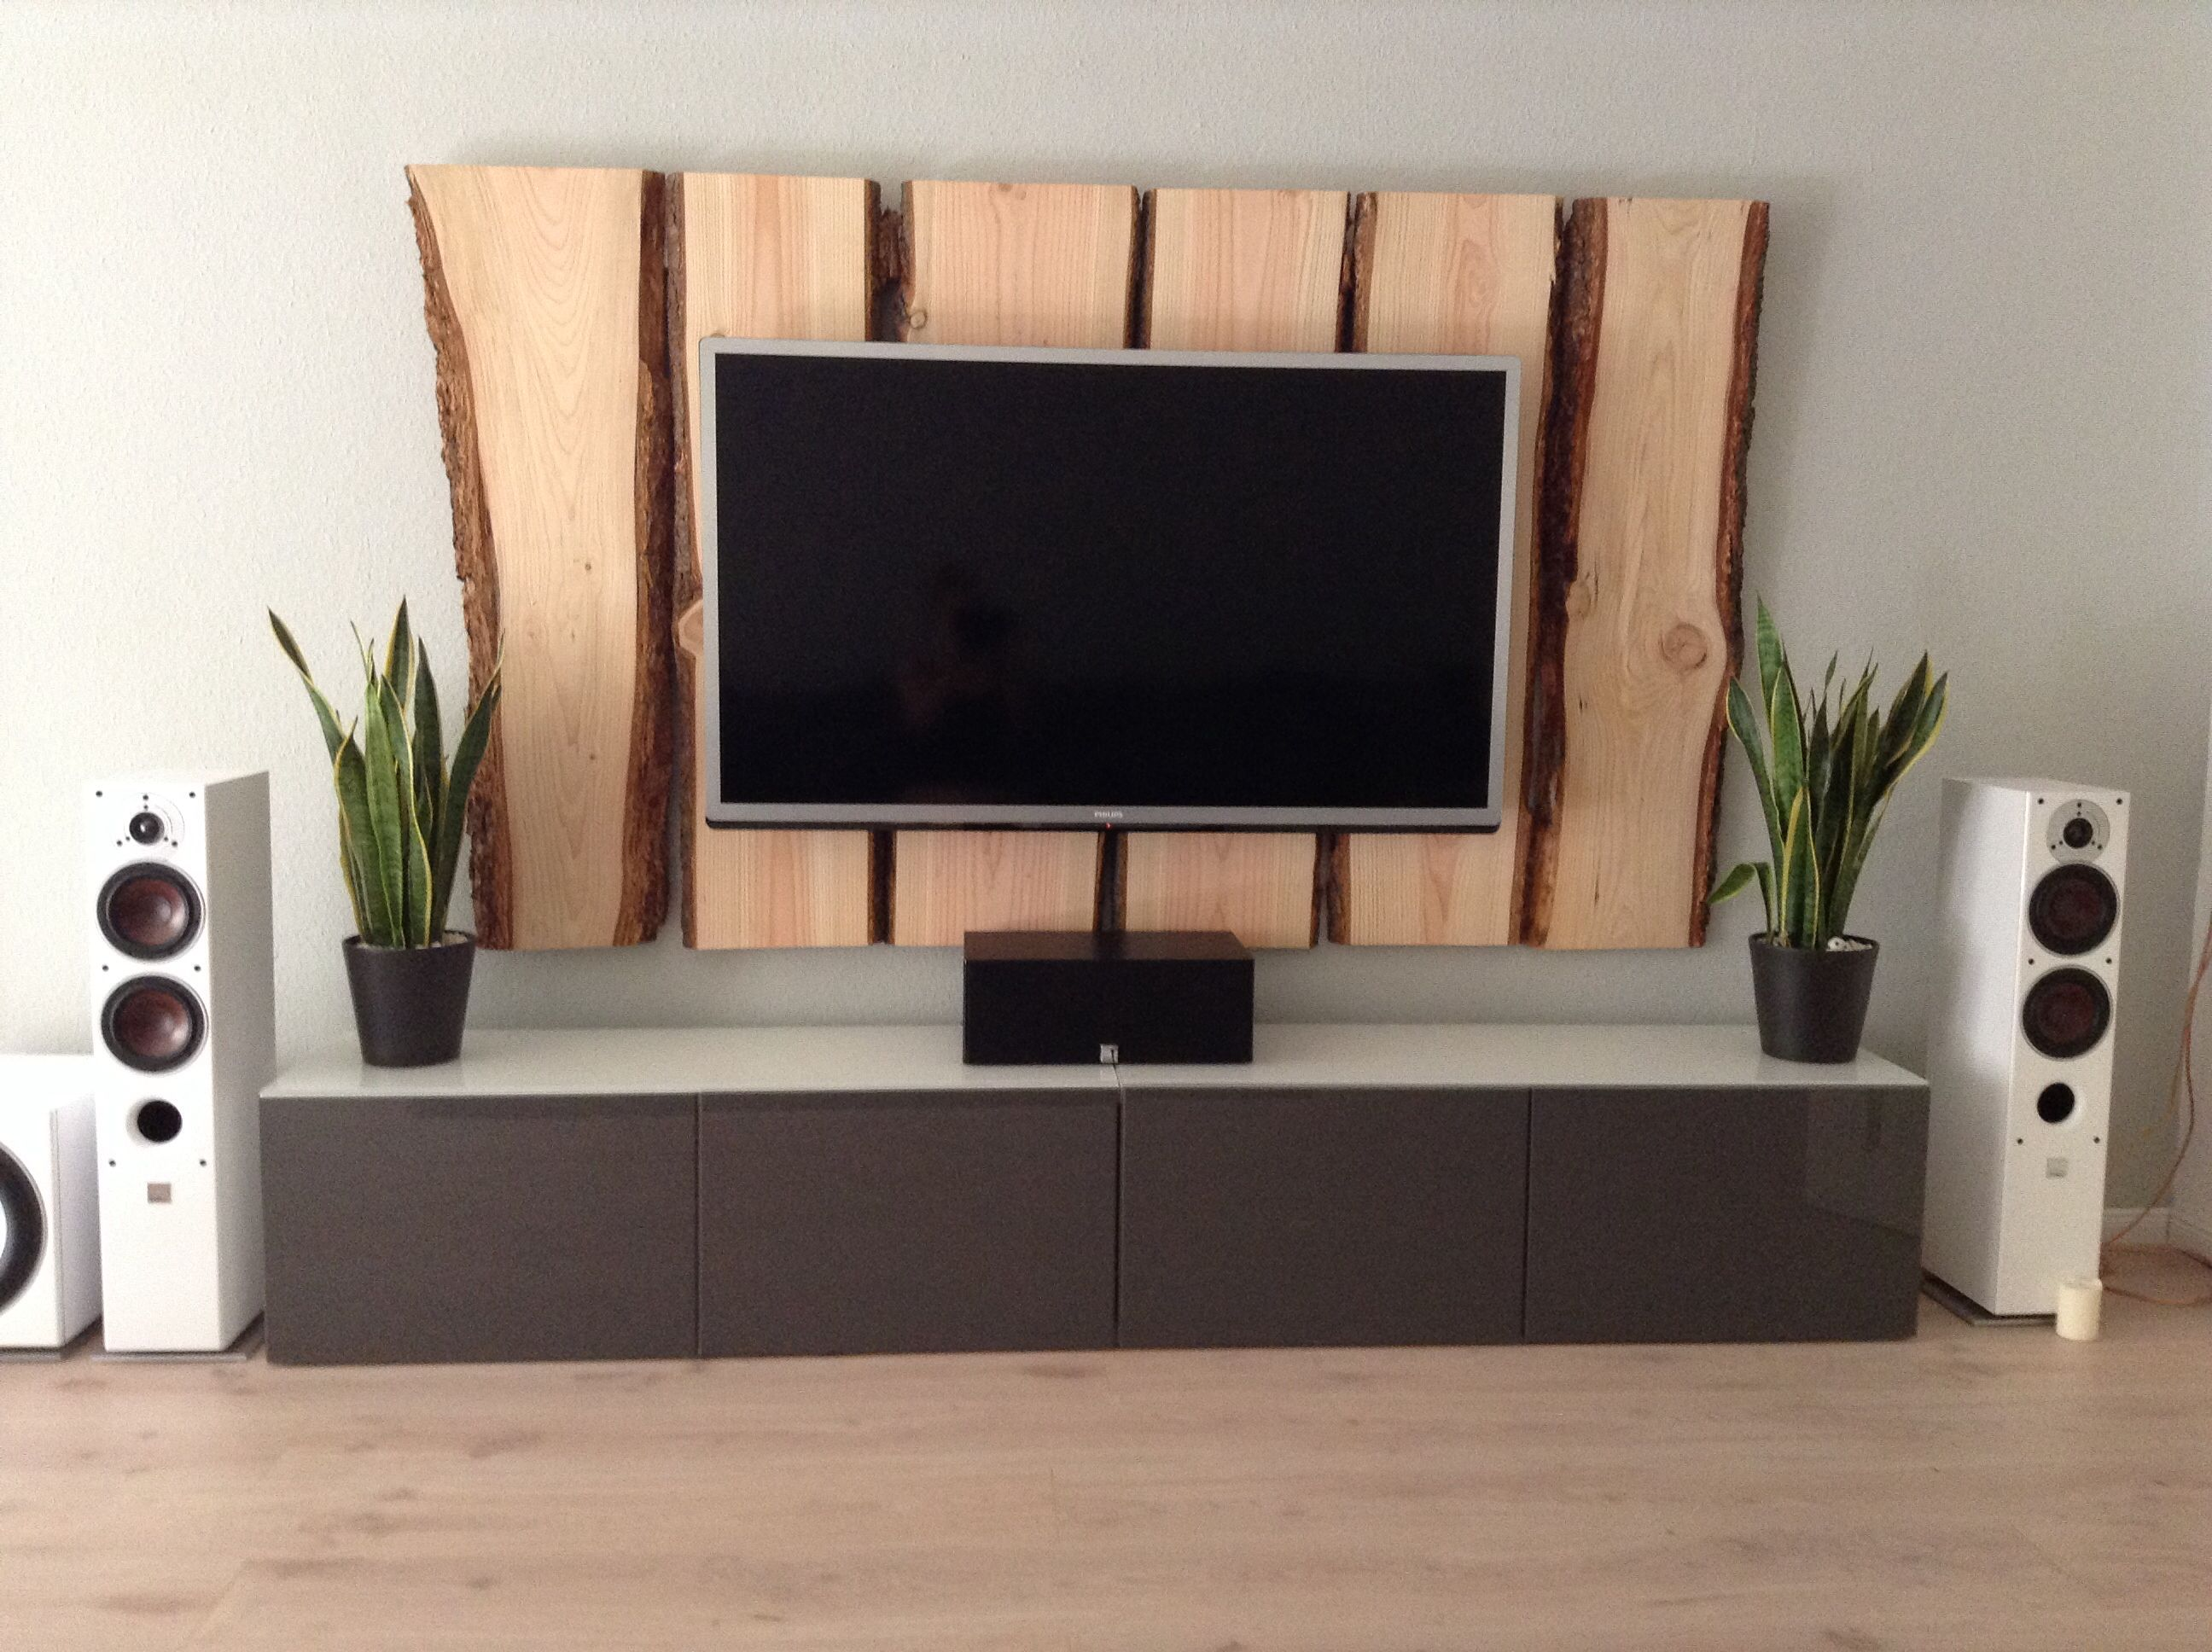 Holz Tv Wand  Tv Wall Wood  Deko Und So  Pinterest Tv